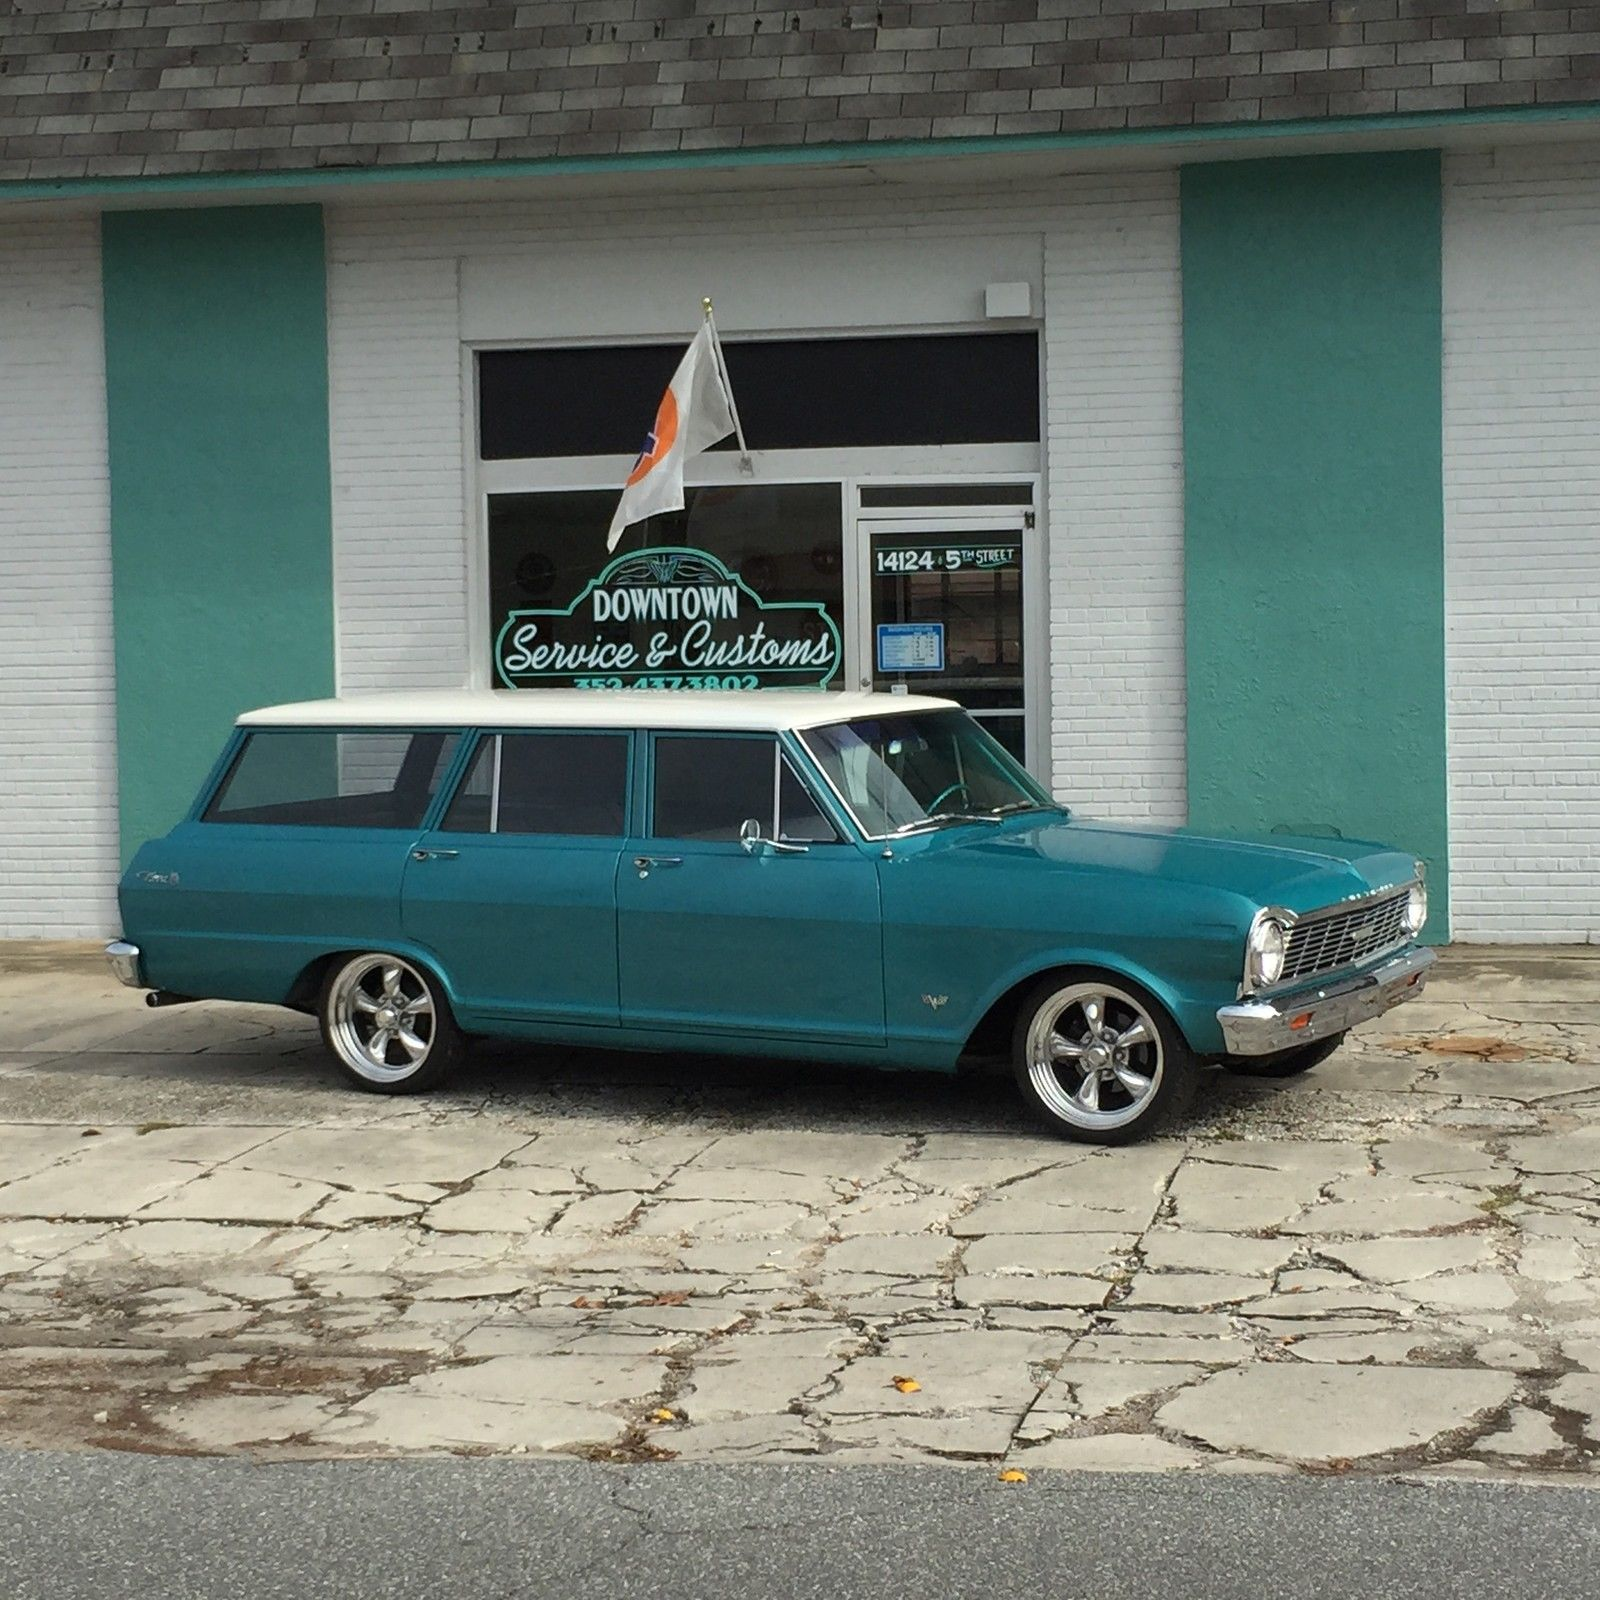 1965 Chevrolet Nova Station Wagon